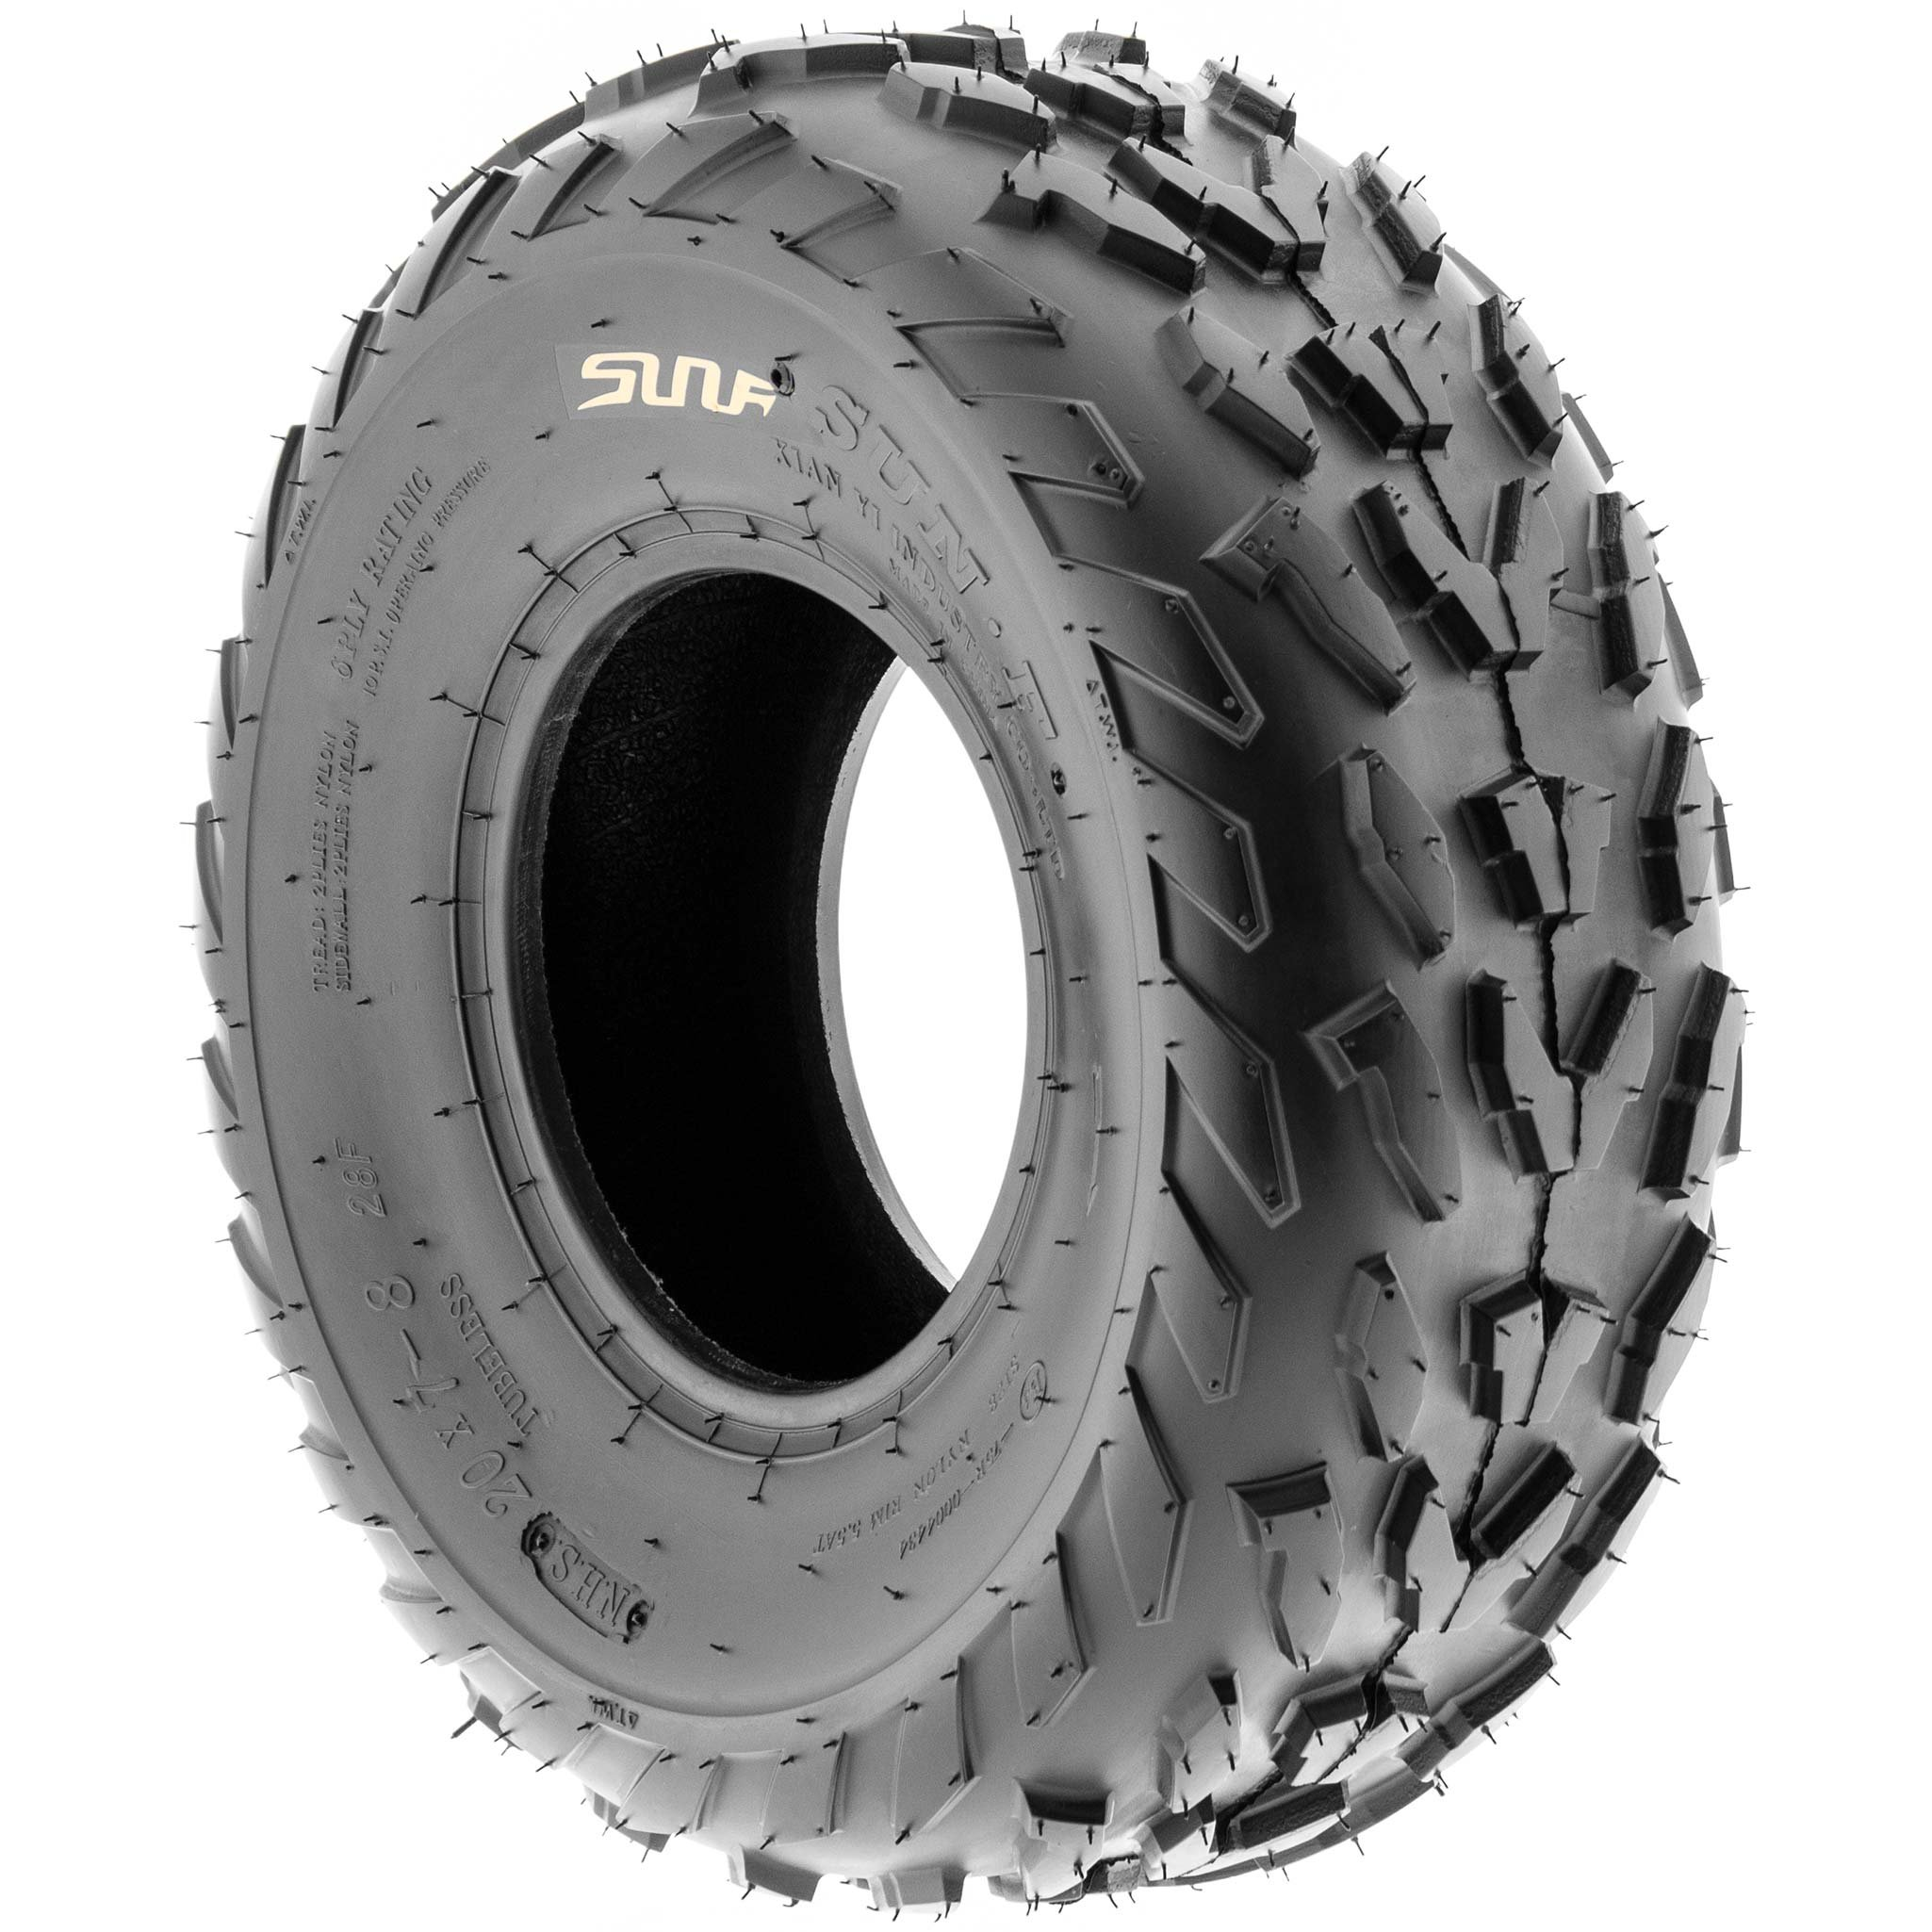 SunF 20x7-8 20x7x8 ATV UTV A/T Quad Race Replacement 6 PR Tubeless Tires A007, [Set of 2] by SunF (Image #5)